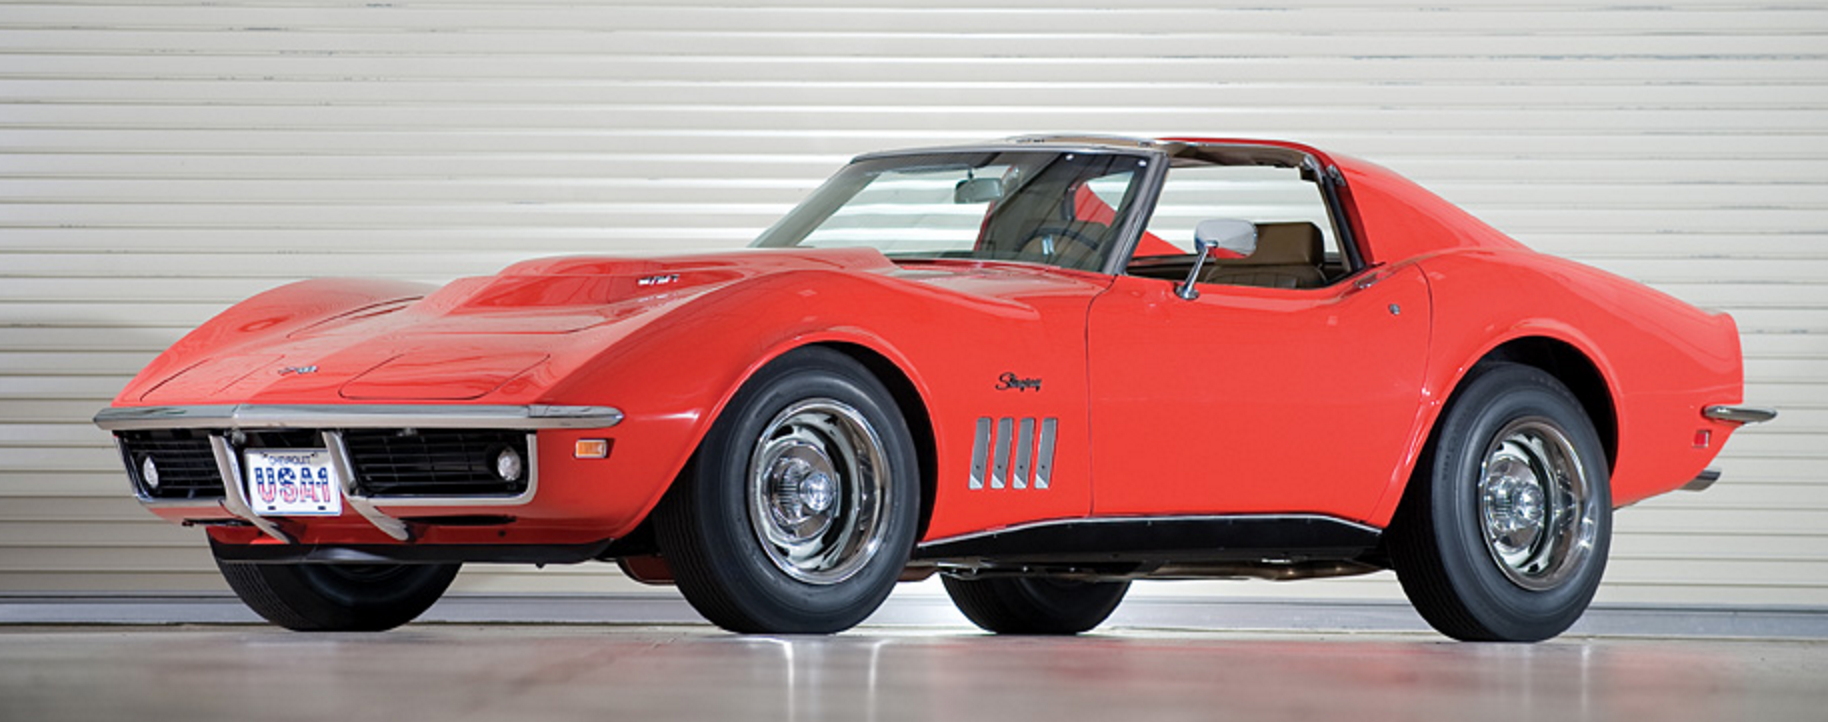 Chevrolet Corvette Stingray L88 Coupe